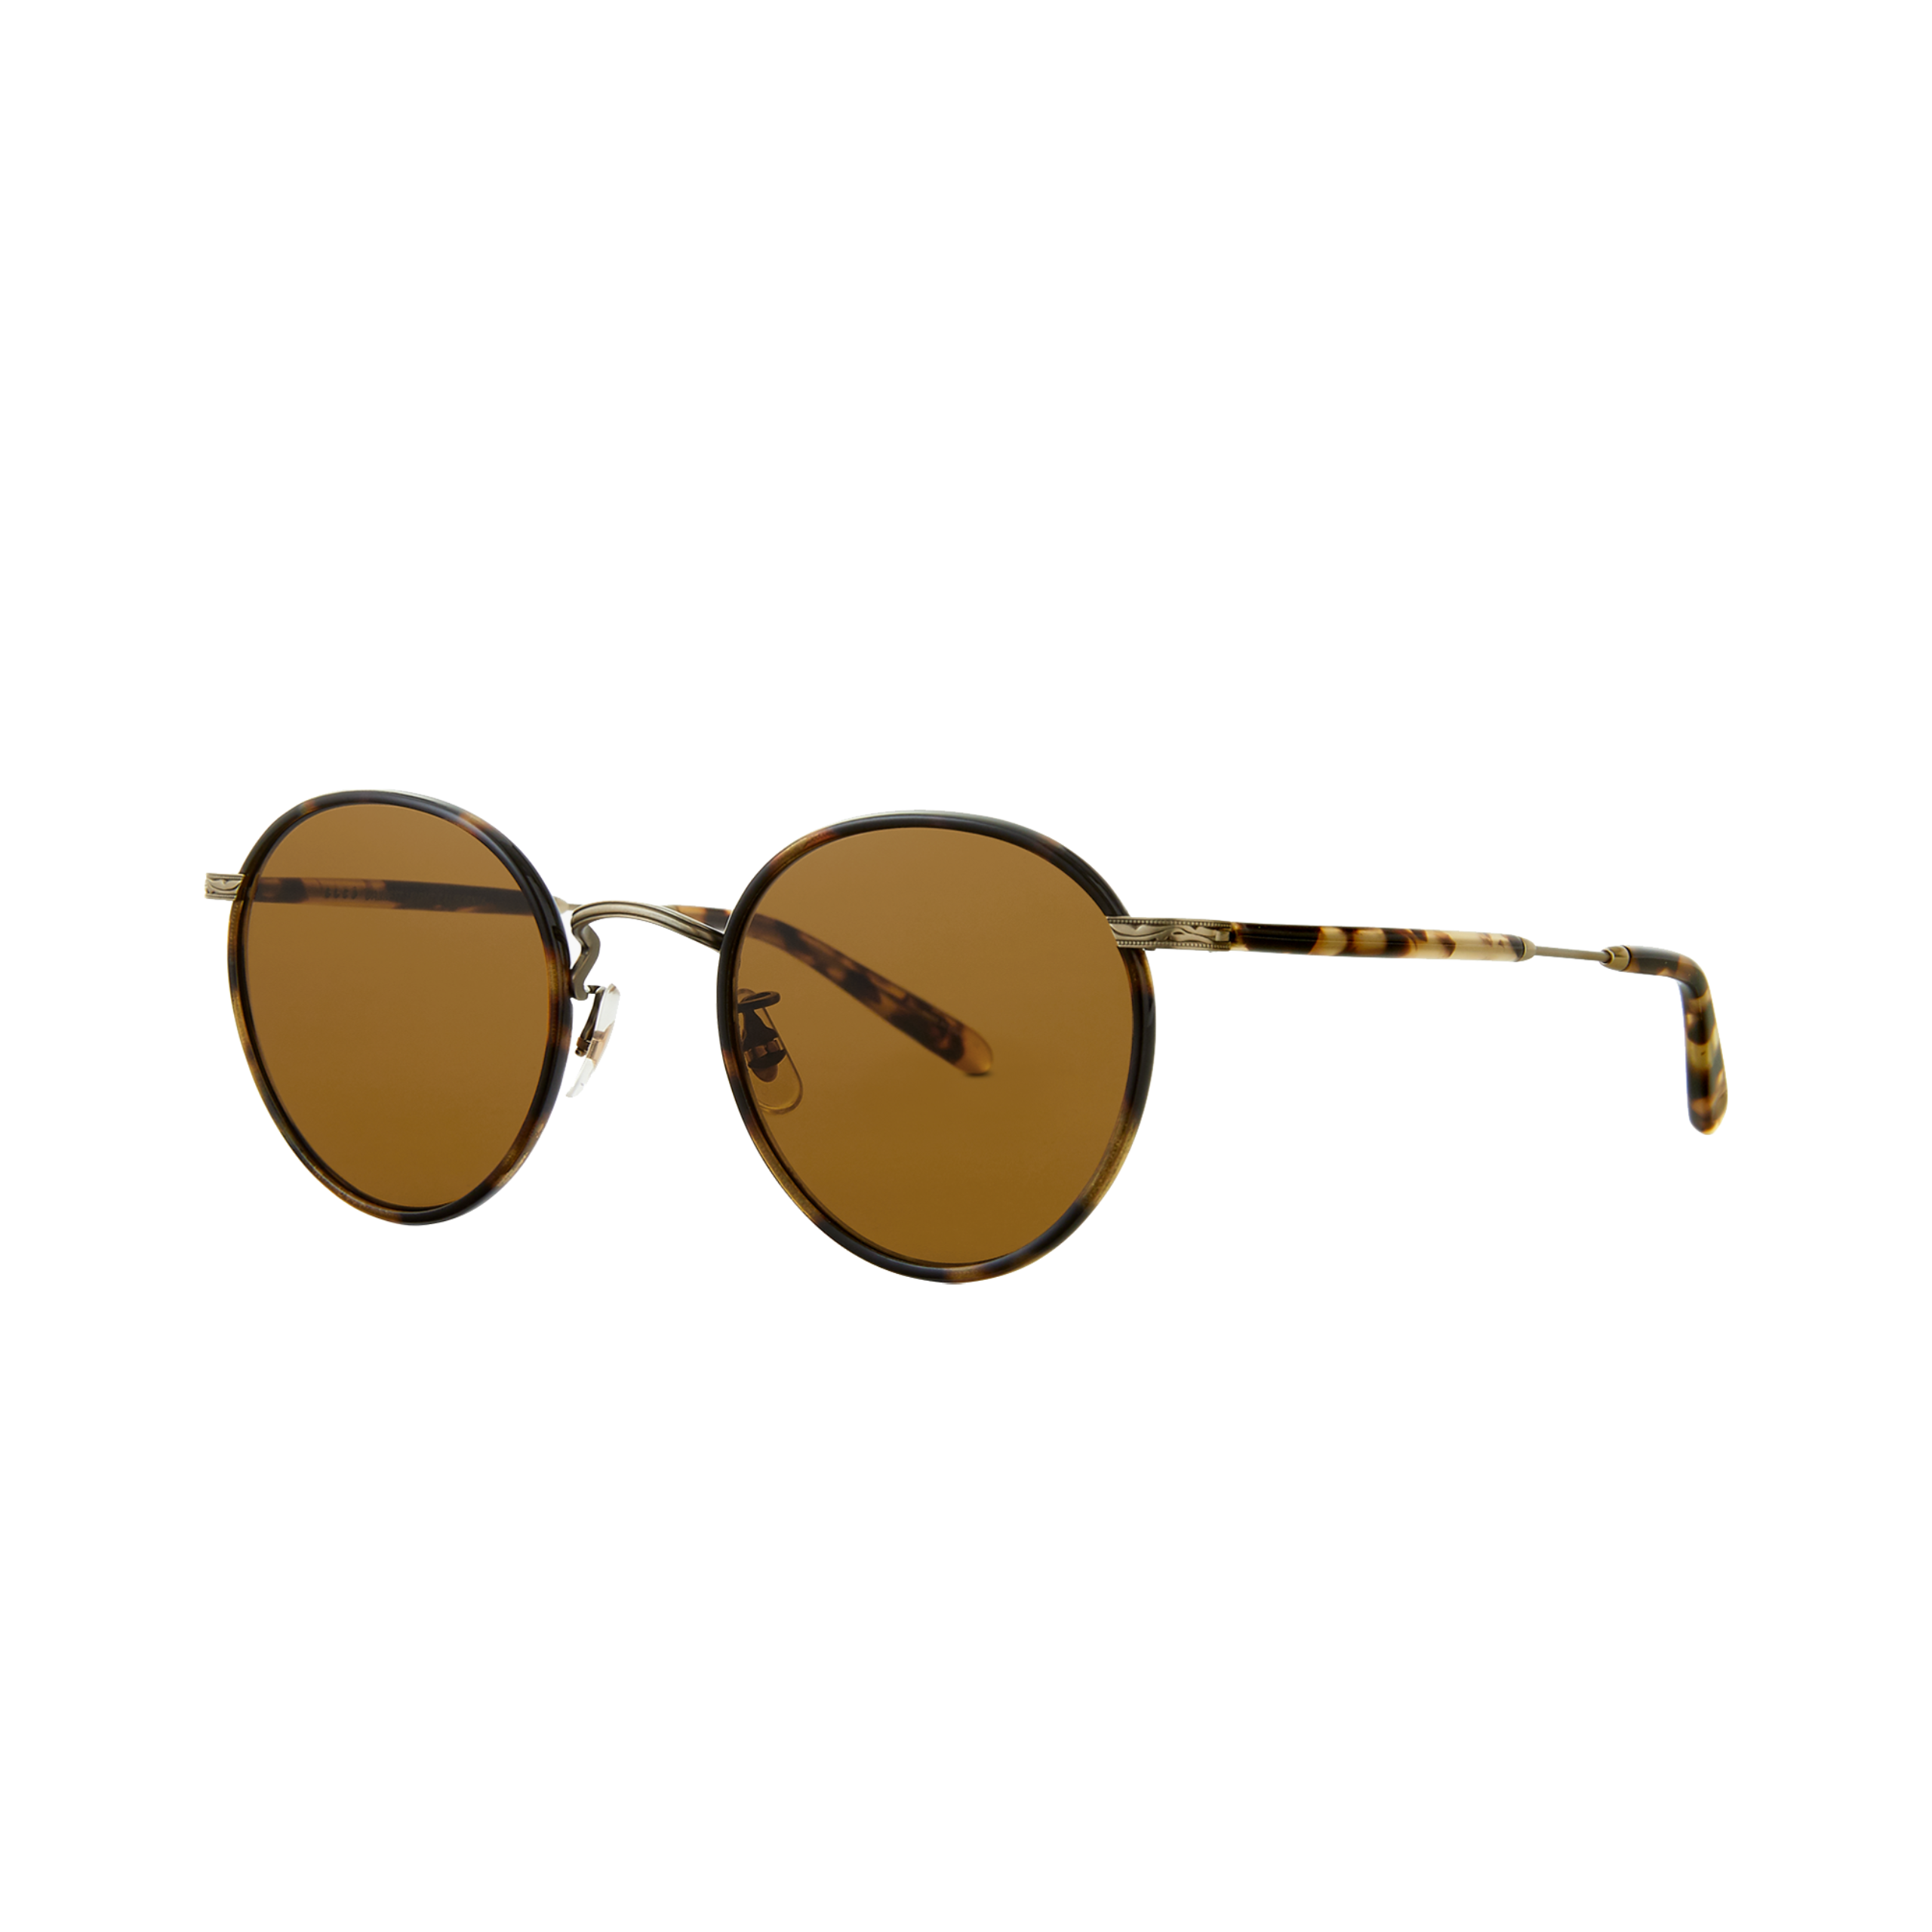 Garrett Leight eyewear - Wilson sunglasses • Frames and Faces